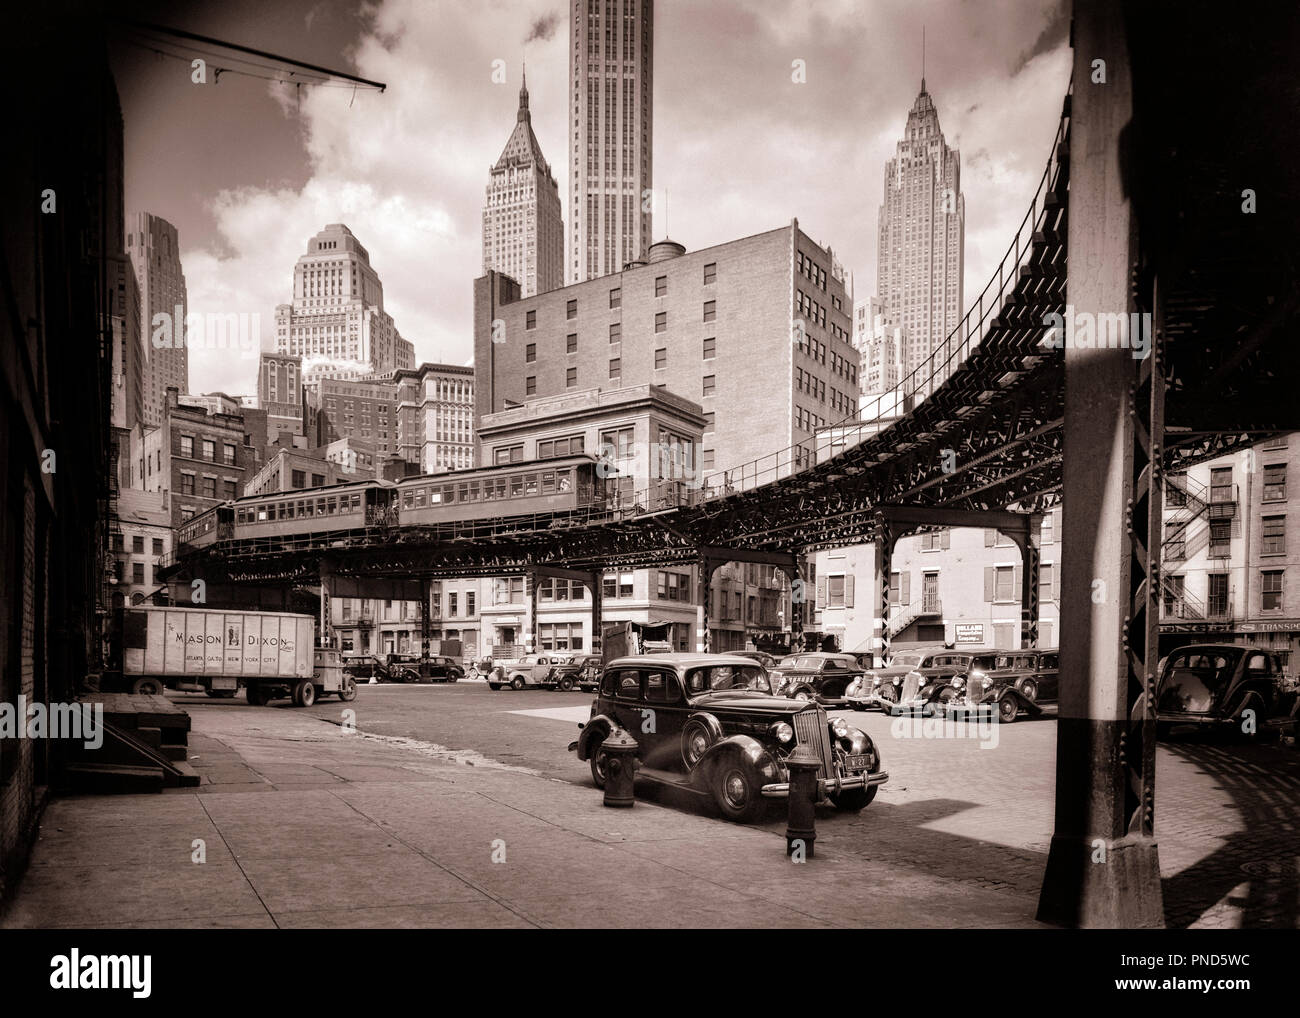 1930s DOWNTOWN FINANCIAL DISTRICT CURVE OF THIRD AVENUE ELEVATED TRAIN AT COENTIES SLIP NEW YORK CITY USA - q36042 CPC001 HARS ELEVATED VEHICLES EDIFICE NEW YORK CITY RAILROADS BLACK AND WHITE CURVE DISTRICT EAST SIDE EL FINANCIAL DISTRICT OLD FASHIONED SKYSCRAPERS - Stock Image